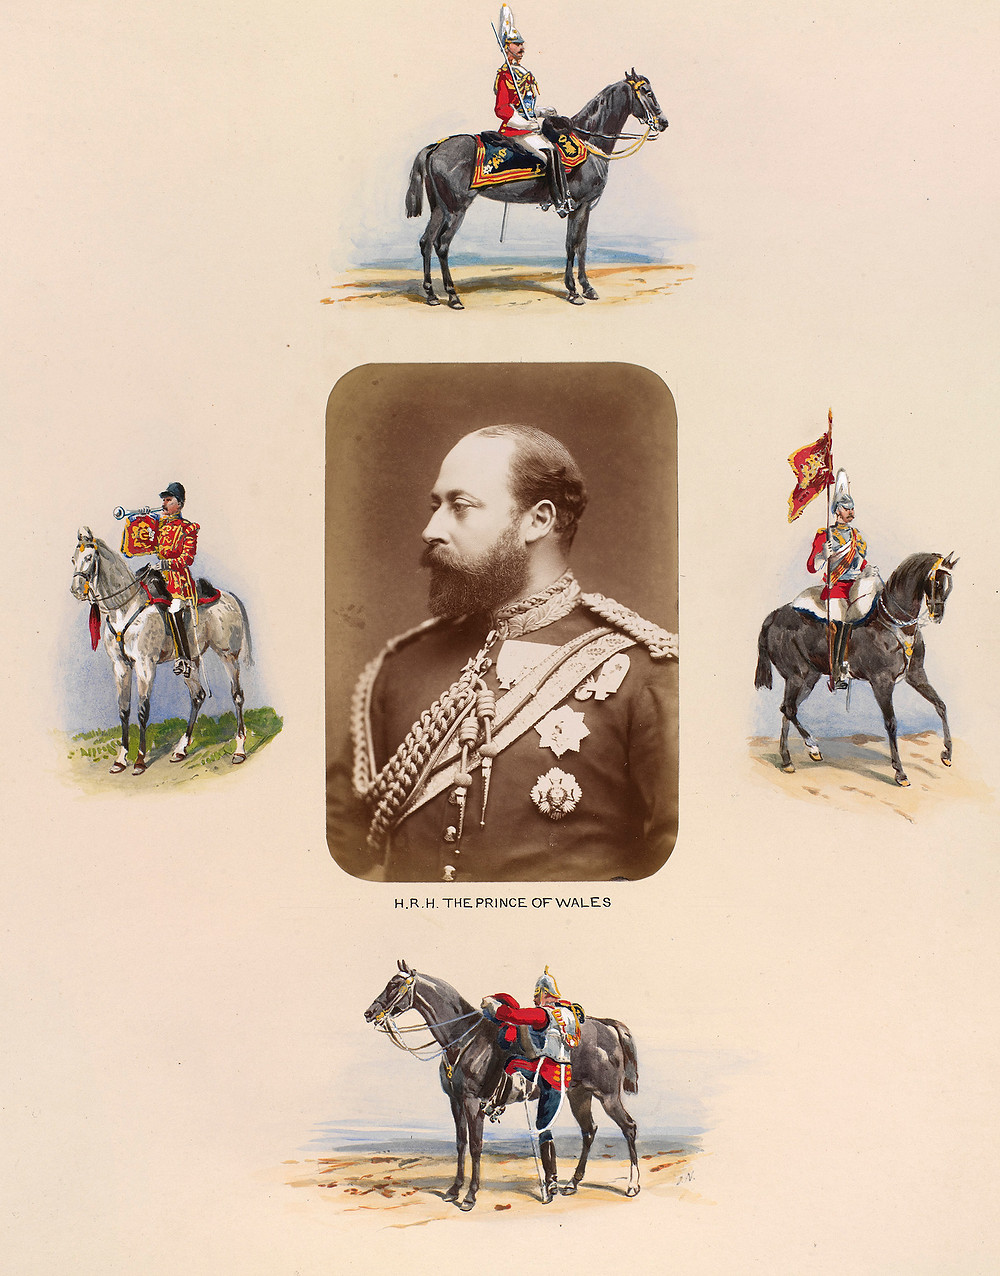 Half-length photograph of Albert Edward, Prince of Wales, later King Edward VII. He is looking to the left and is wearing the uniform of the Household Cavalry. He is wearing the Order of the Garter and the Order of the Bath. The photograph is surrounded by four watercolour illustrations of mounted soldiers painted by the military artist Orlando Norie.